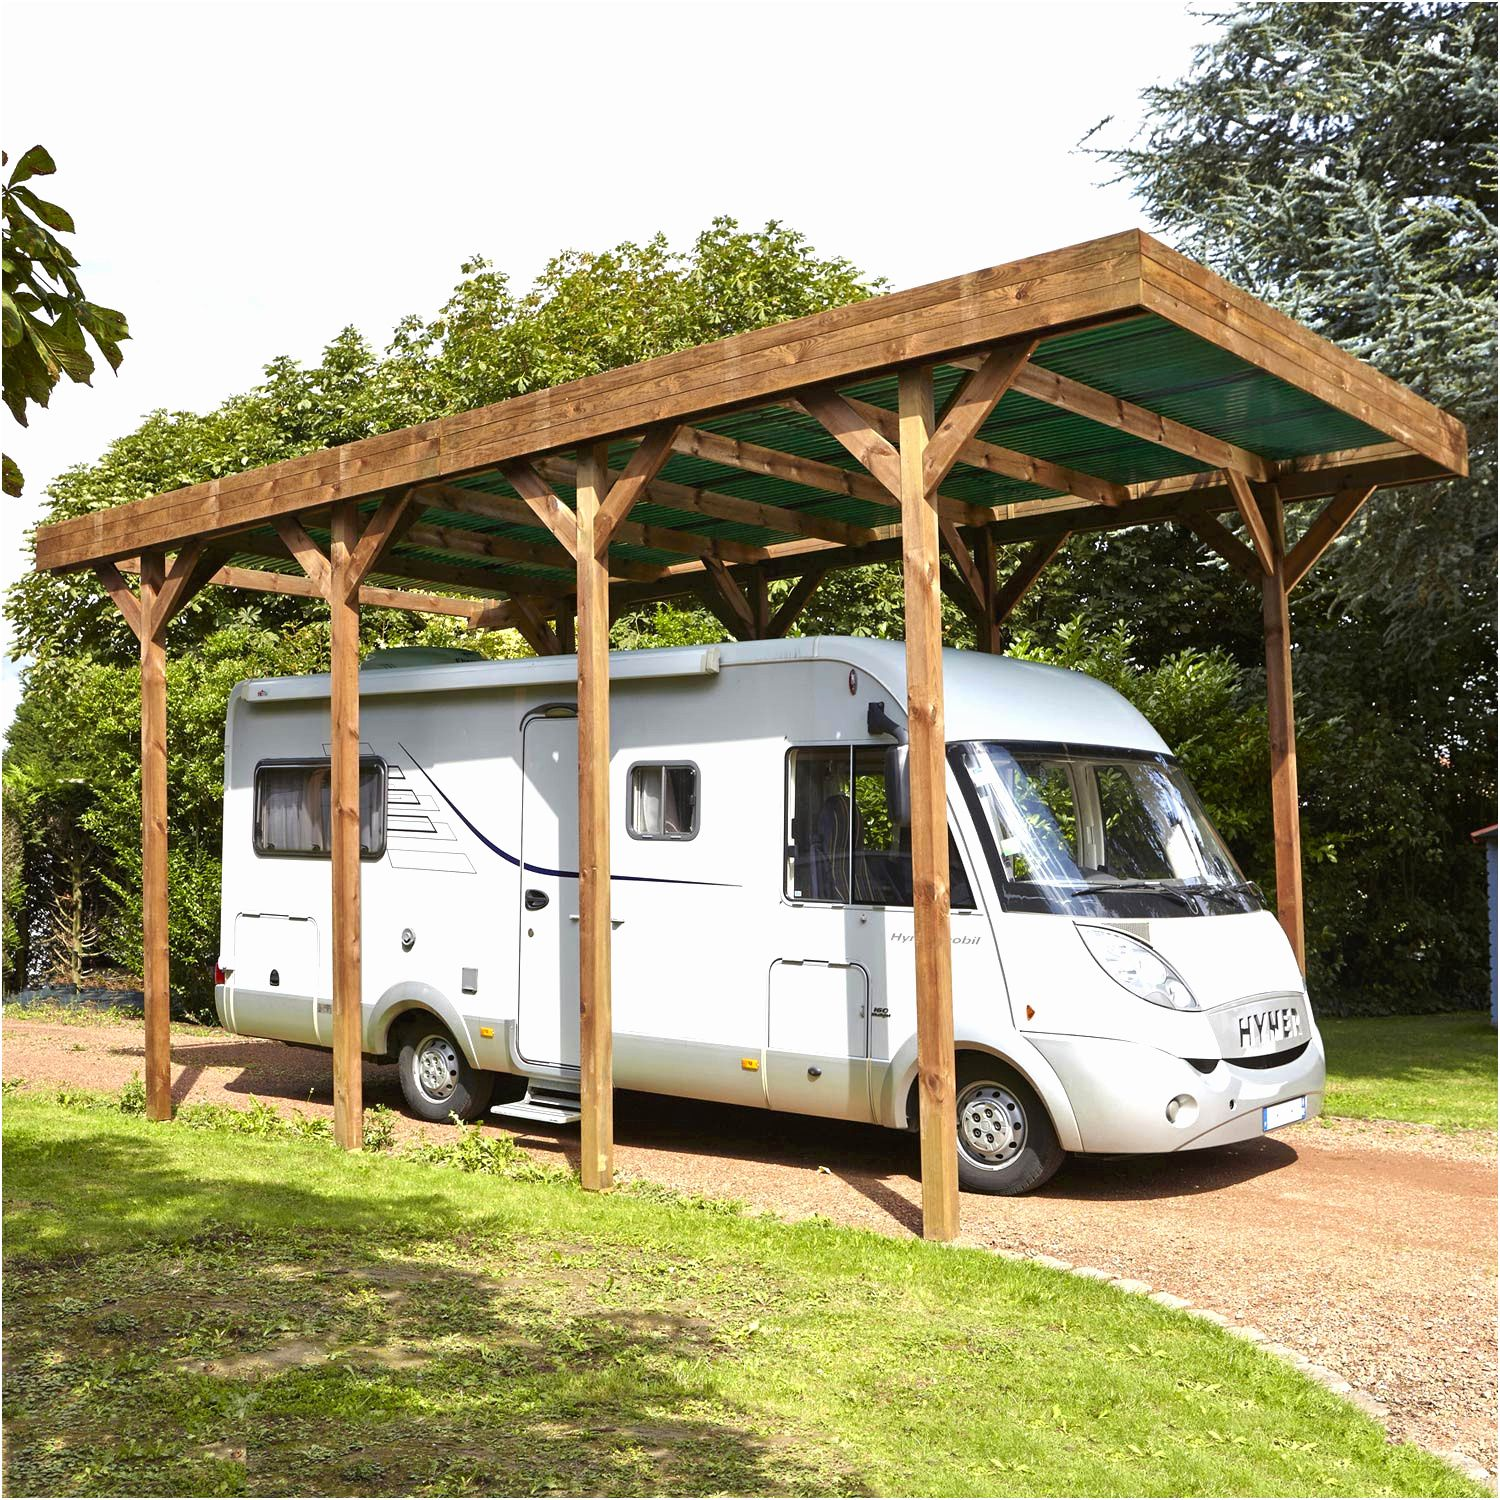 17 Ideal Spot Brico Depot Photograph Carport Car Camping Carport Designs